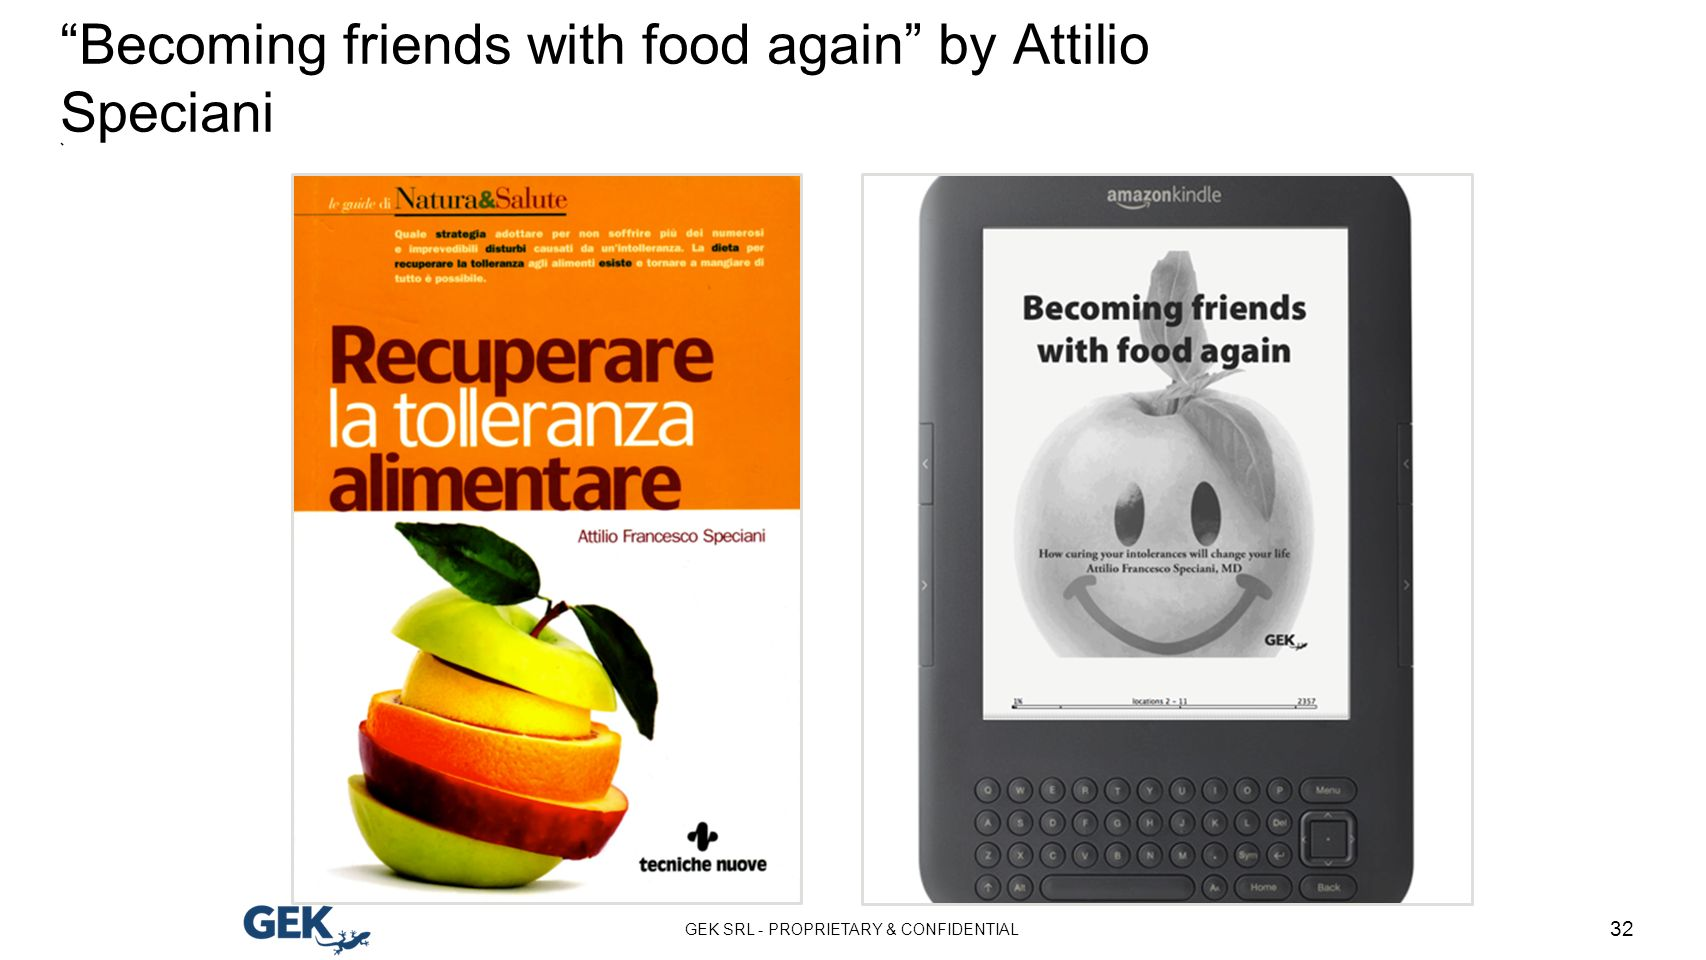 Becoming friends with food again by Attilio Speciani